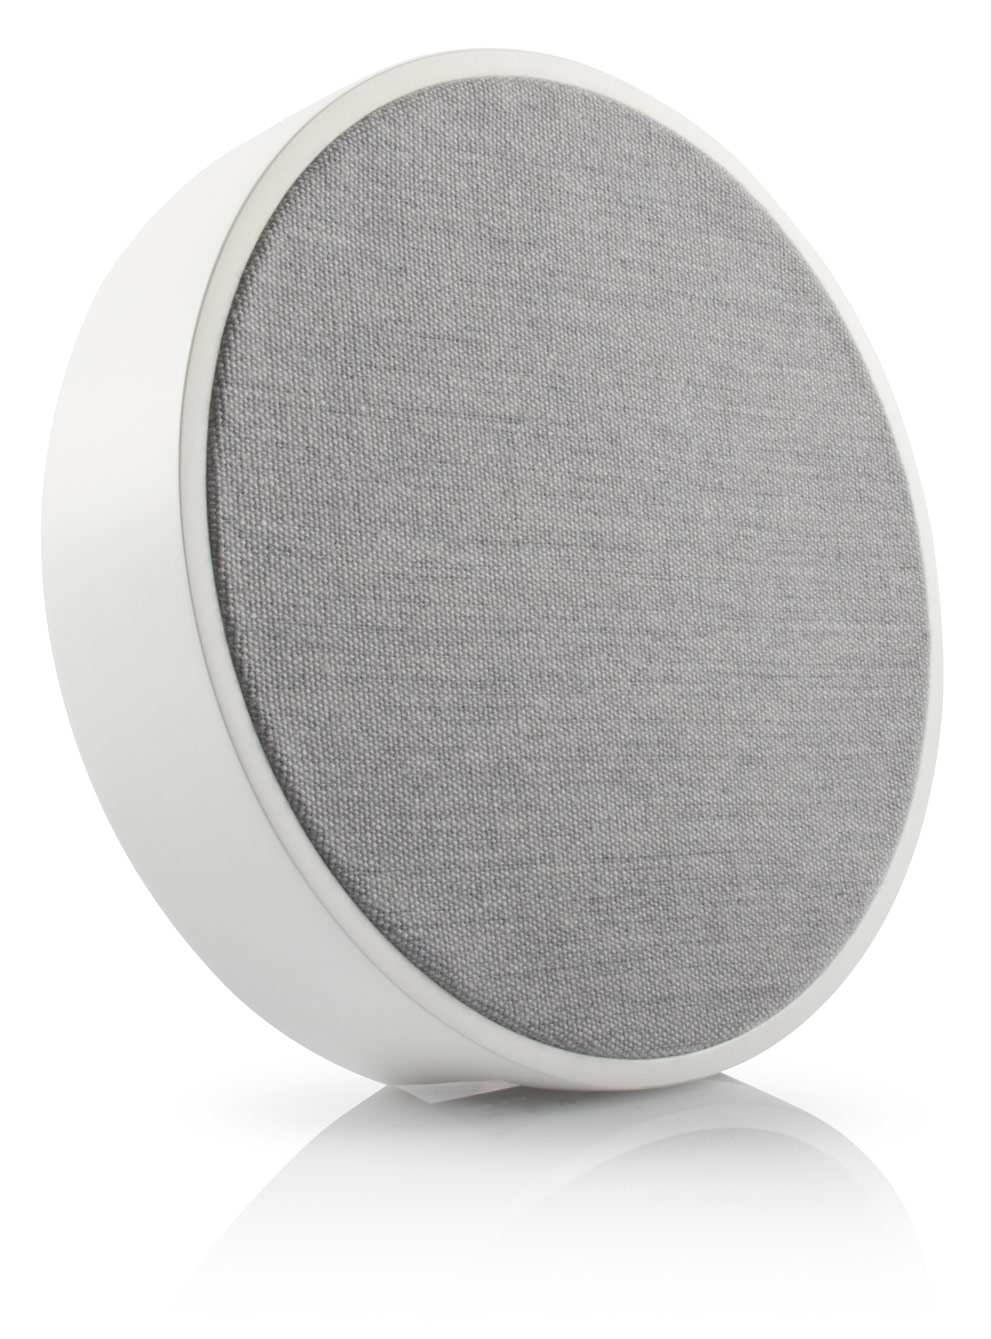 Tivoli Audio Sphera Wireless Speaker- White Grey by Tivoli Audio